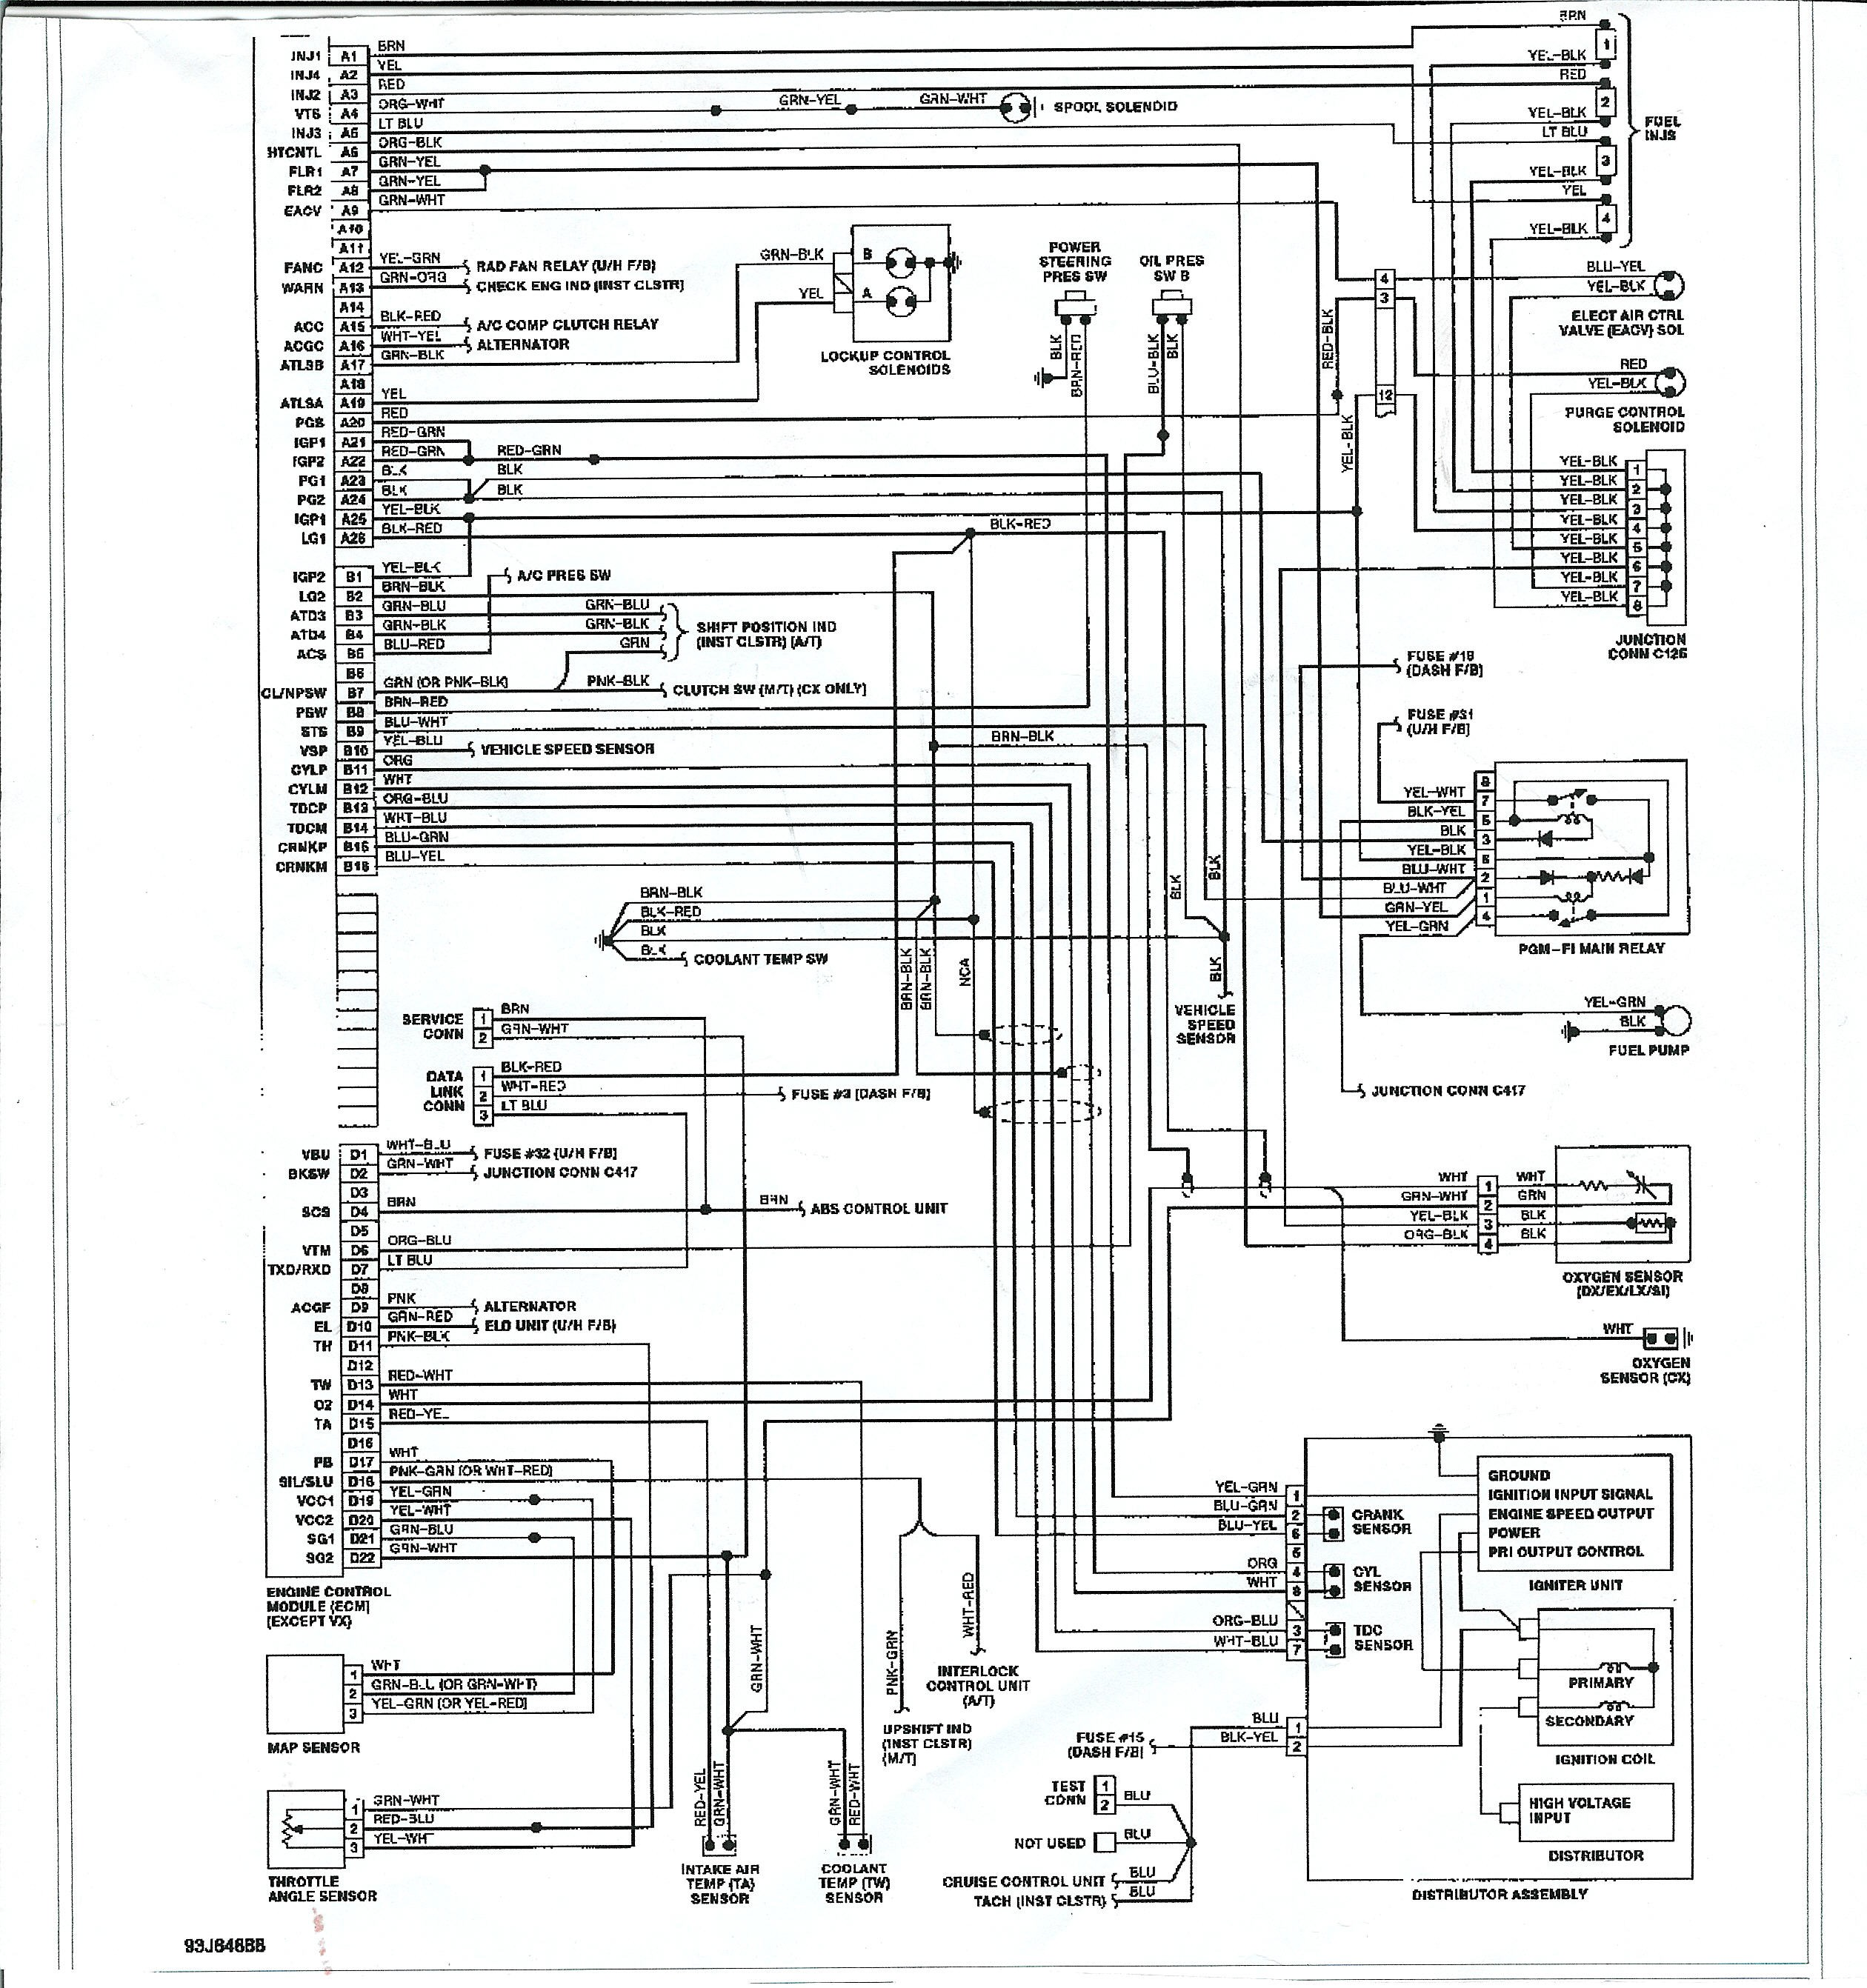 ... Diagram Honda S2000 Headlight Fuse Box Location Honda CR-V Fuse ...